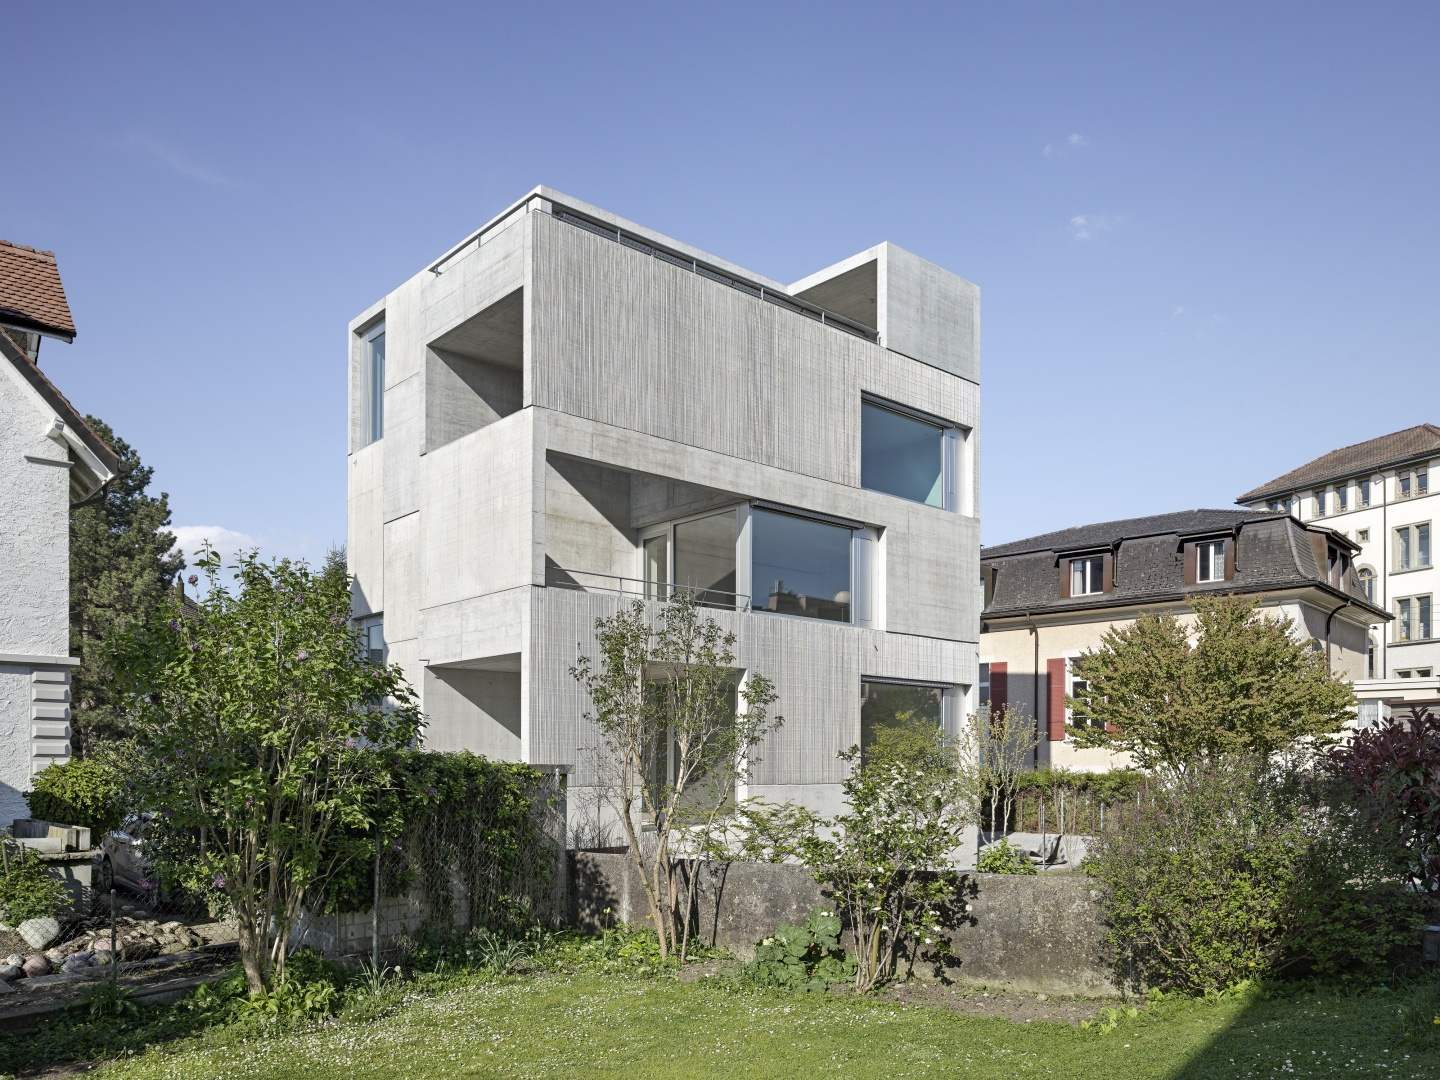 Roh und direkt wohnhaus in uster arc award for Design house architecture hamilton